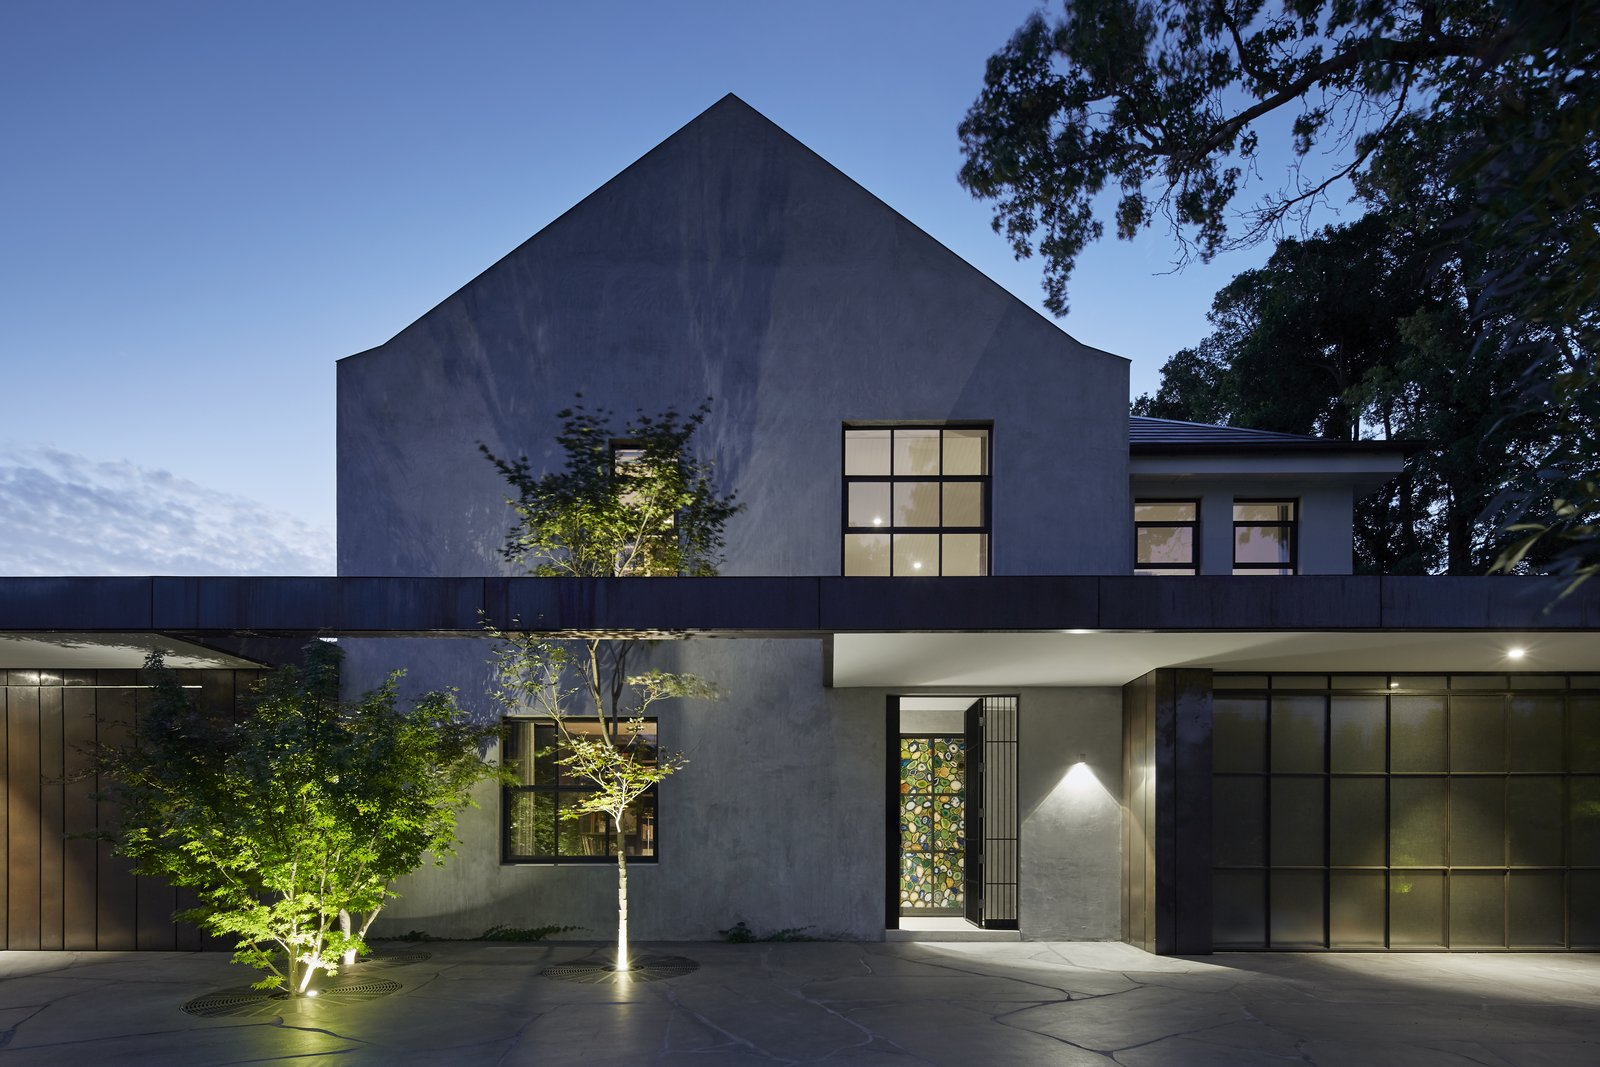 House Building Type, Concrete Siding Material, Outdoor, Front Yard, Trees, Landscape Lighting, and Walkways  Photo 2 of 11 in See How Sliding-Glass Pavilions Transformed a Renovated Melbourne Home